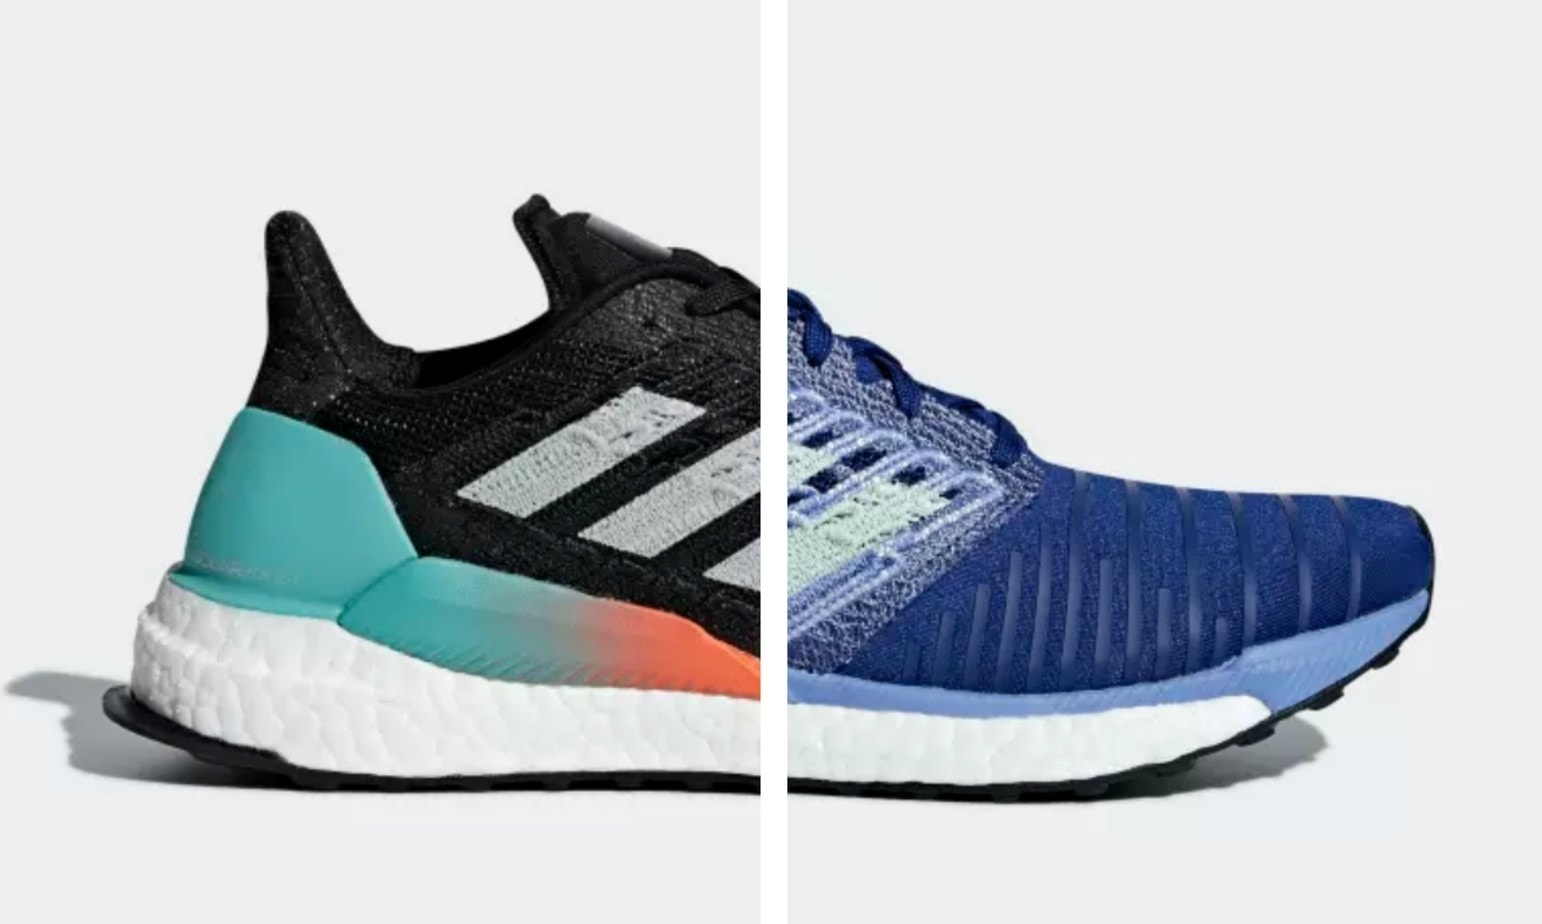 717ca2d40d1 The adidas Solar was a bust when it first released in 2015. Despite the  silhouette's incredible performance benefits, it just never gained the  attention it ...